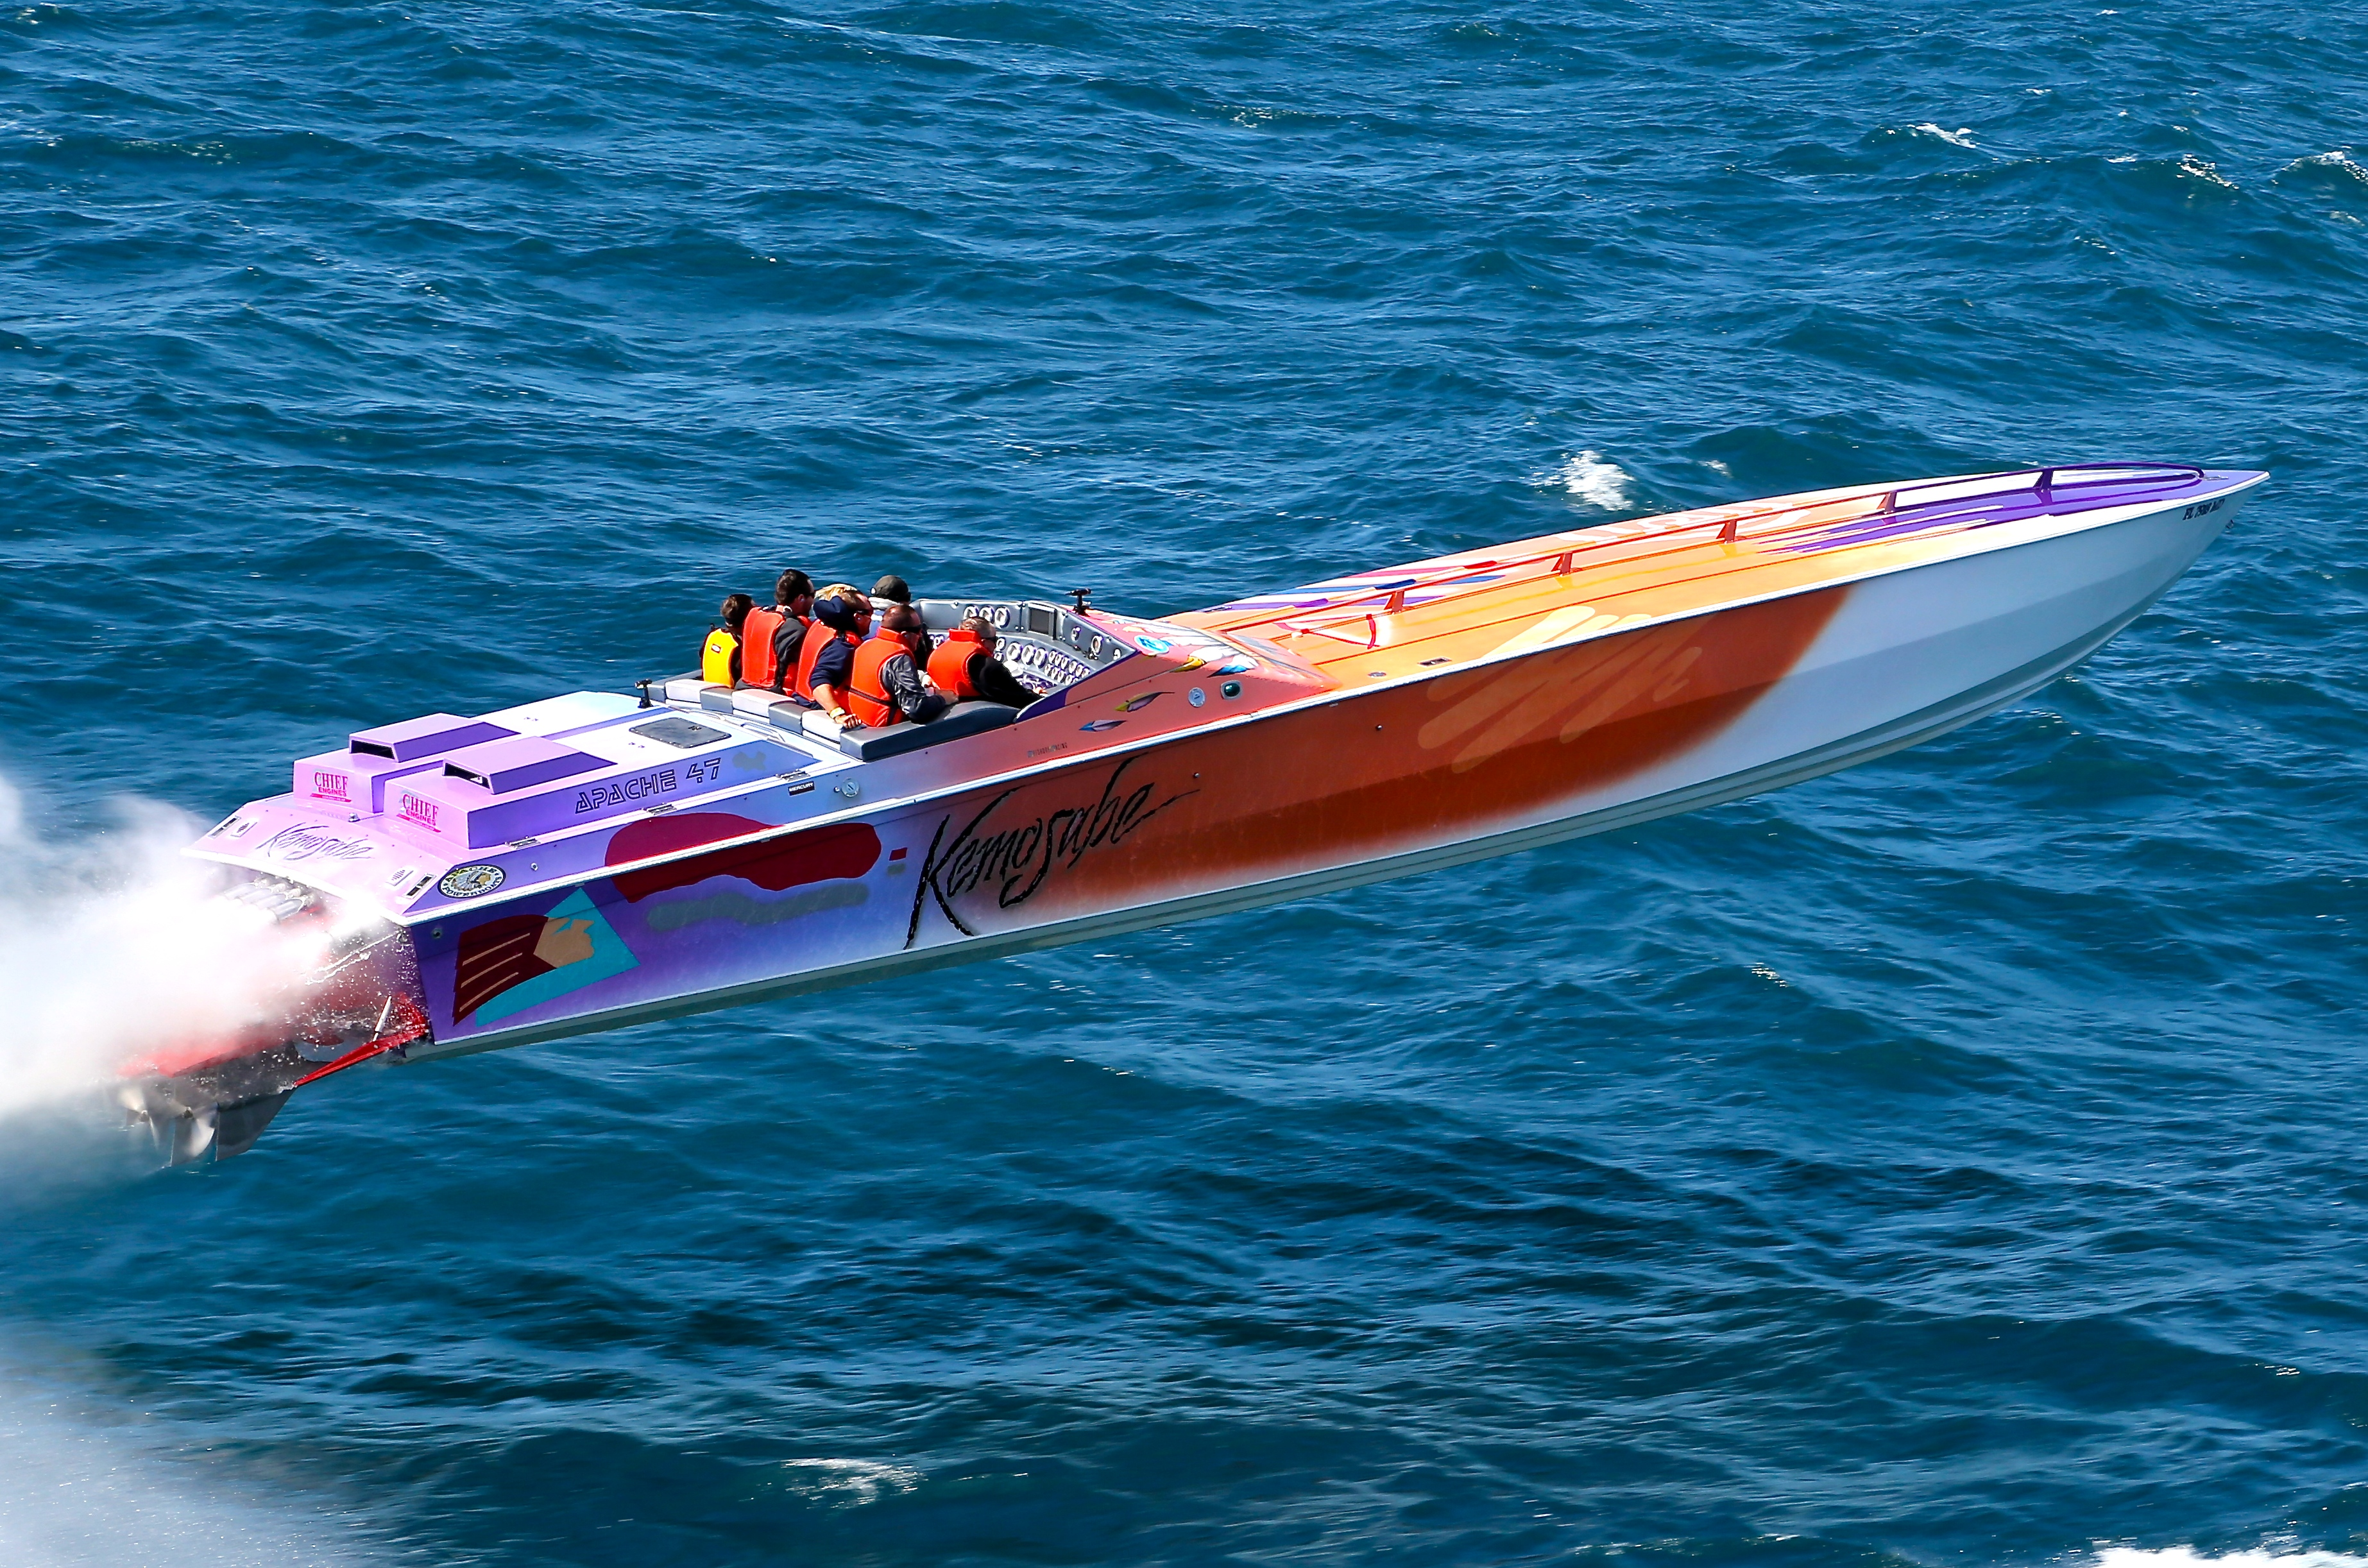 motorized toy boats with Thunder Boat on Rc Pt Boats together with Watch further Cheap Electric Boat Toy together with Prophetic Pool Toys also Thunder Boat.